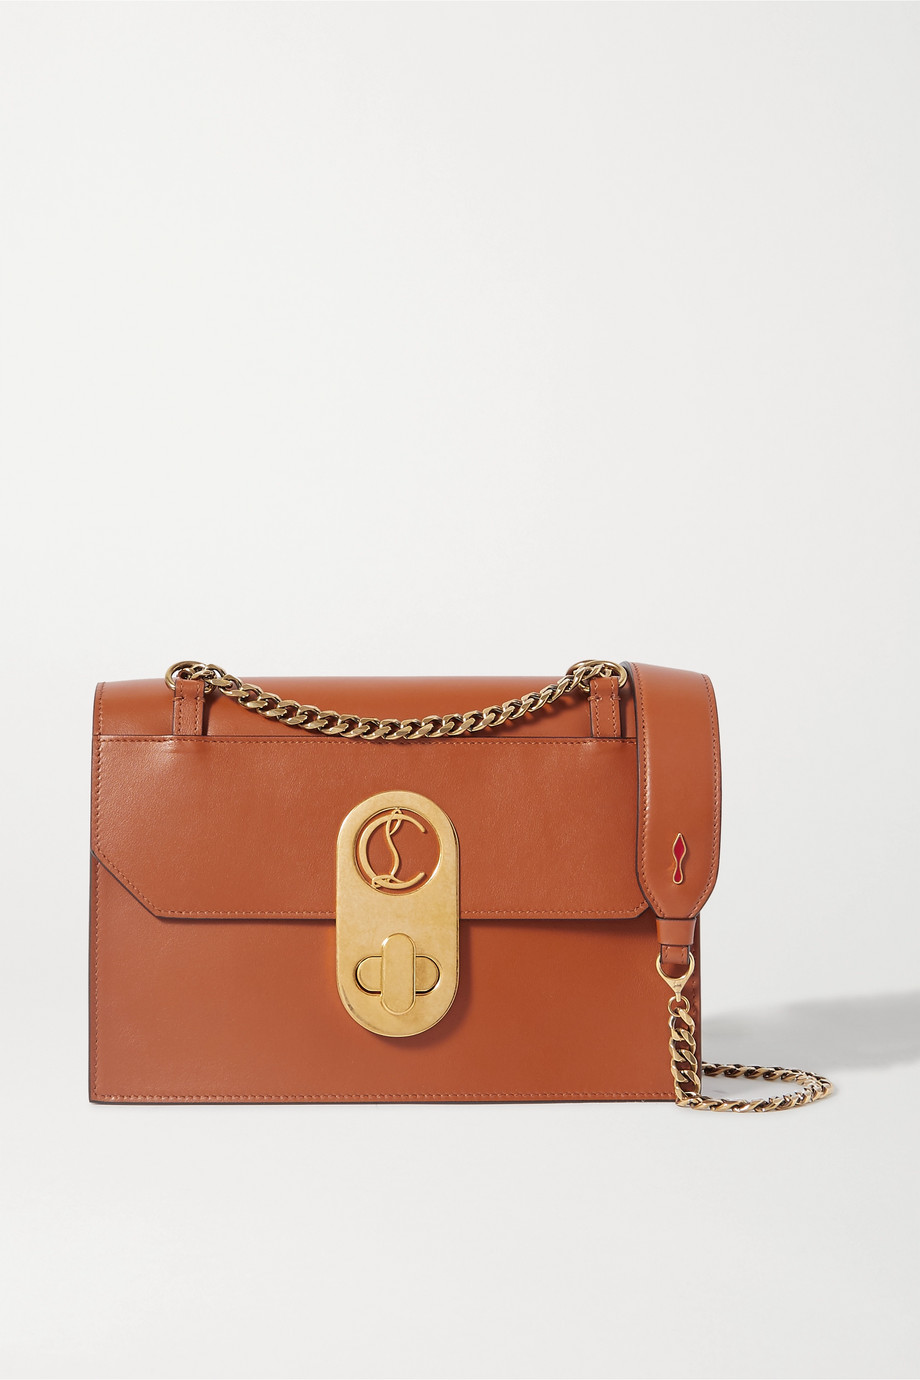 Christian Louboutin Elisa large leather shoulder bag